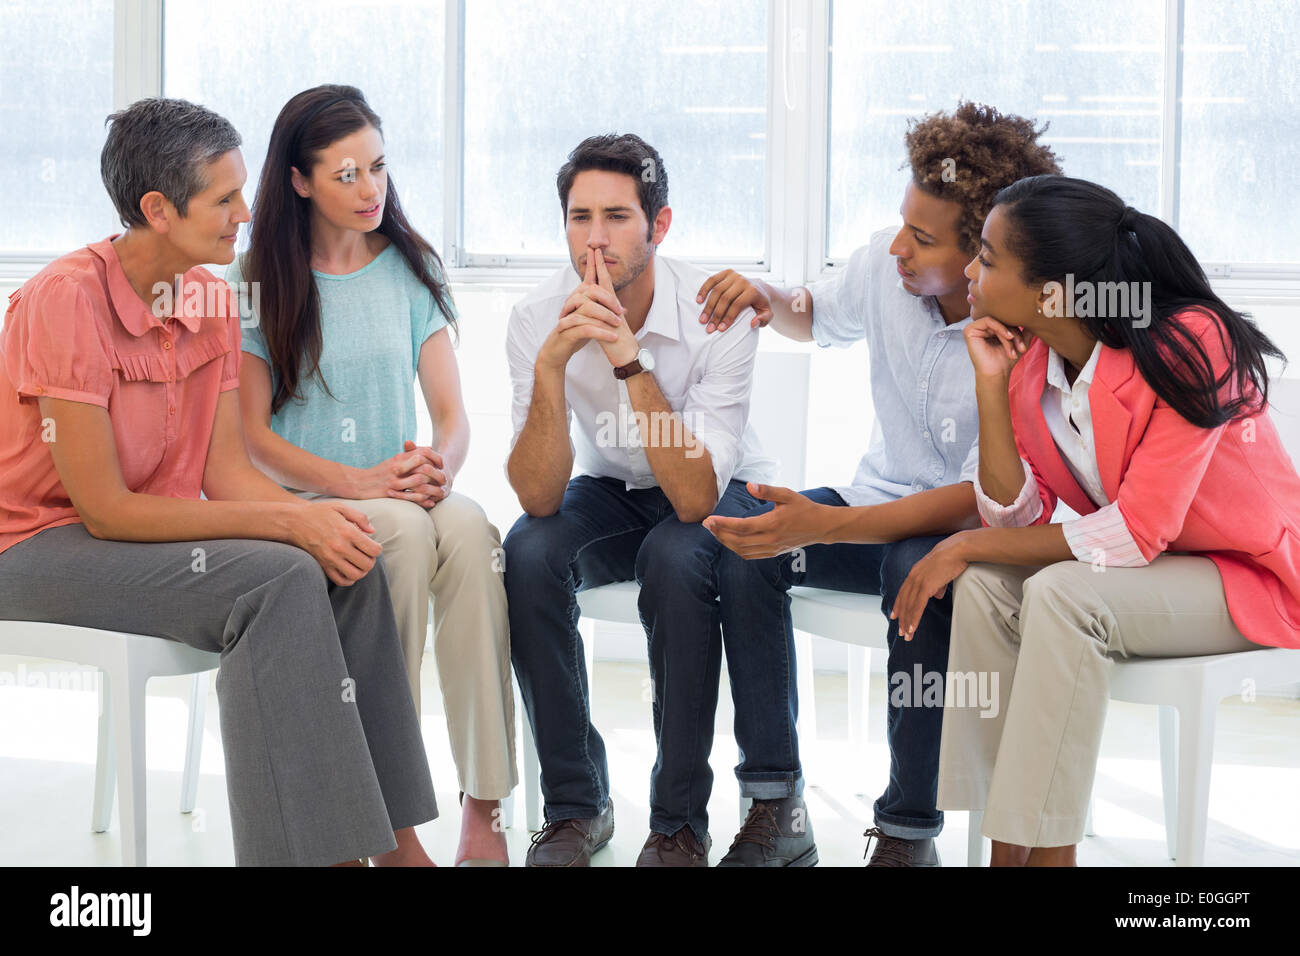 Group therapy in session sitting in a circle - Stock Image